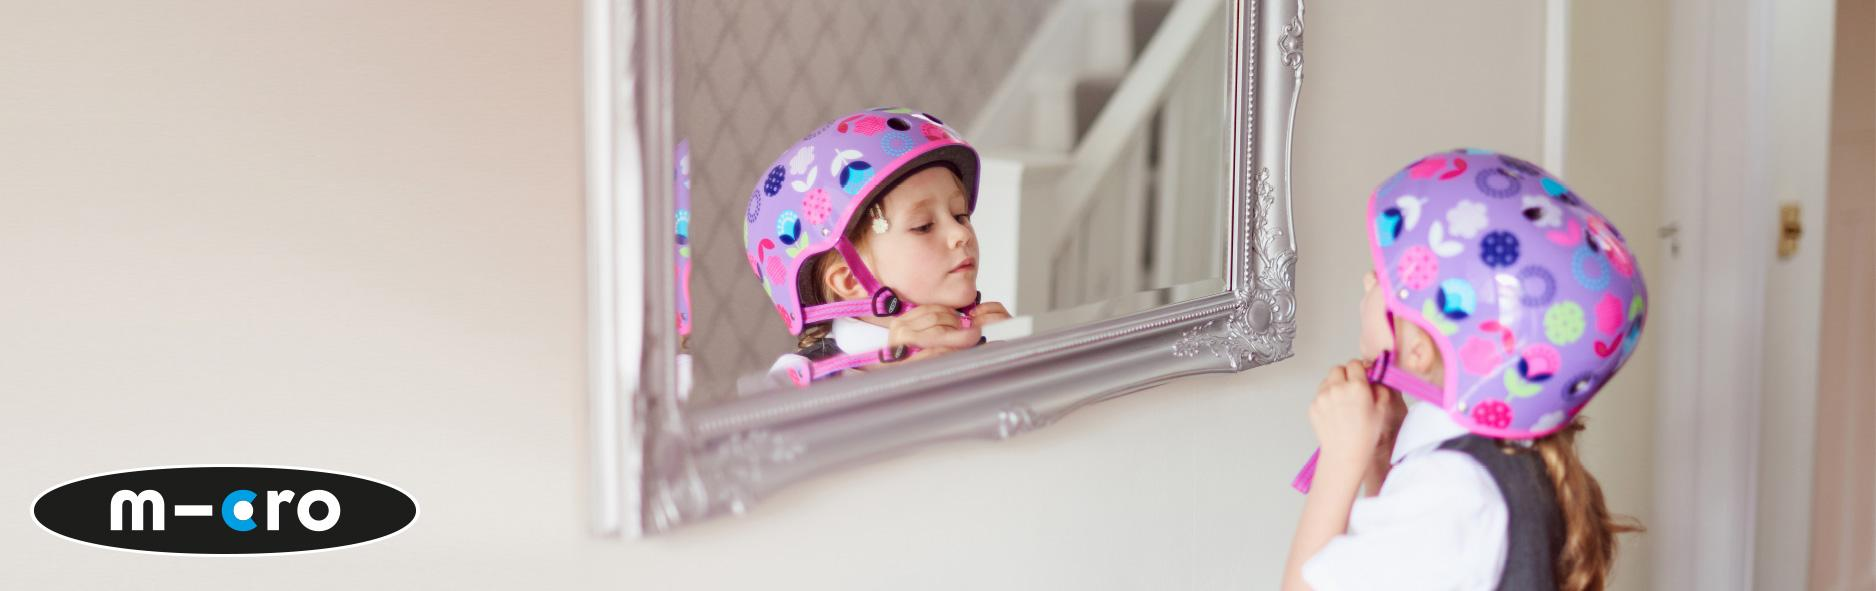 Child Staring At Mirror With Helmet